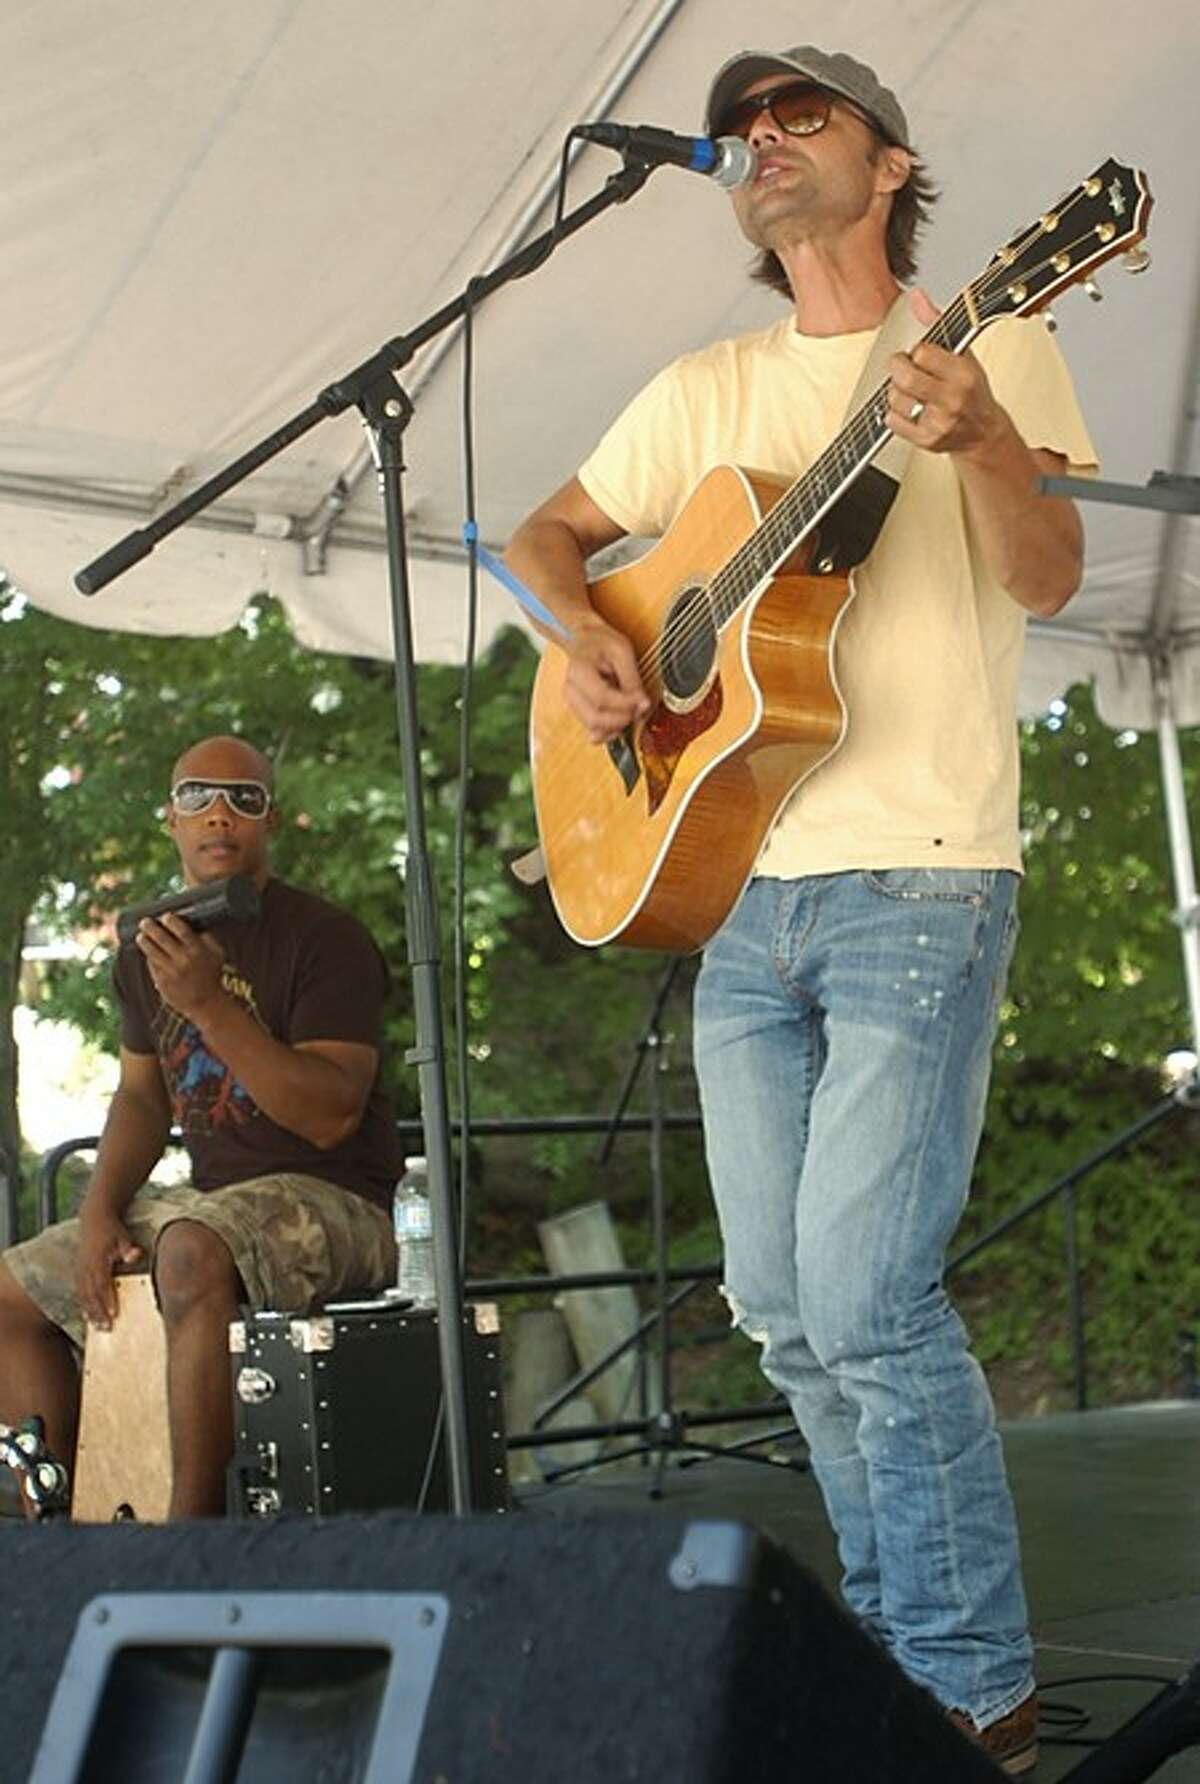 Damon Grant plays with P.J. Pacifico at the Songwriters Stage at the Sono Arts Festival Saturday. Hour photo / Erik Trautmann